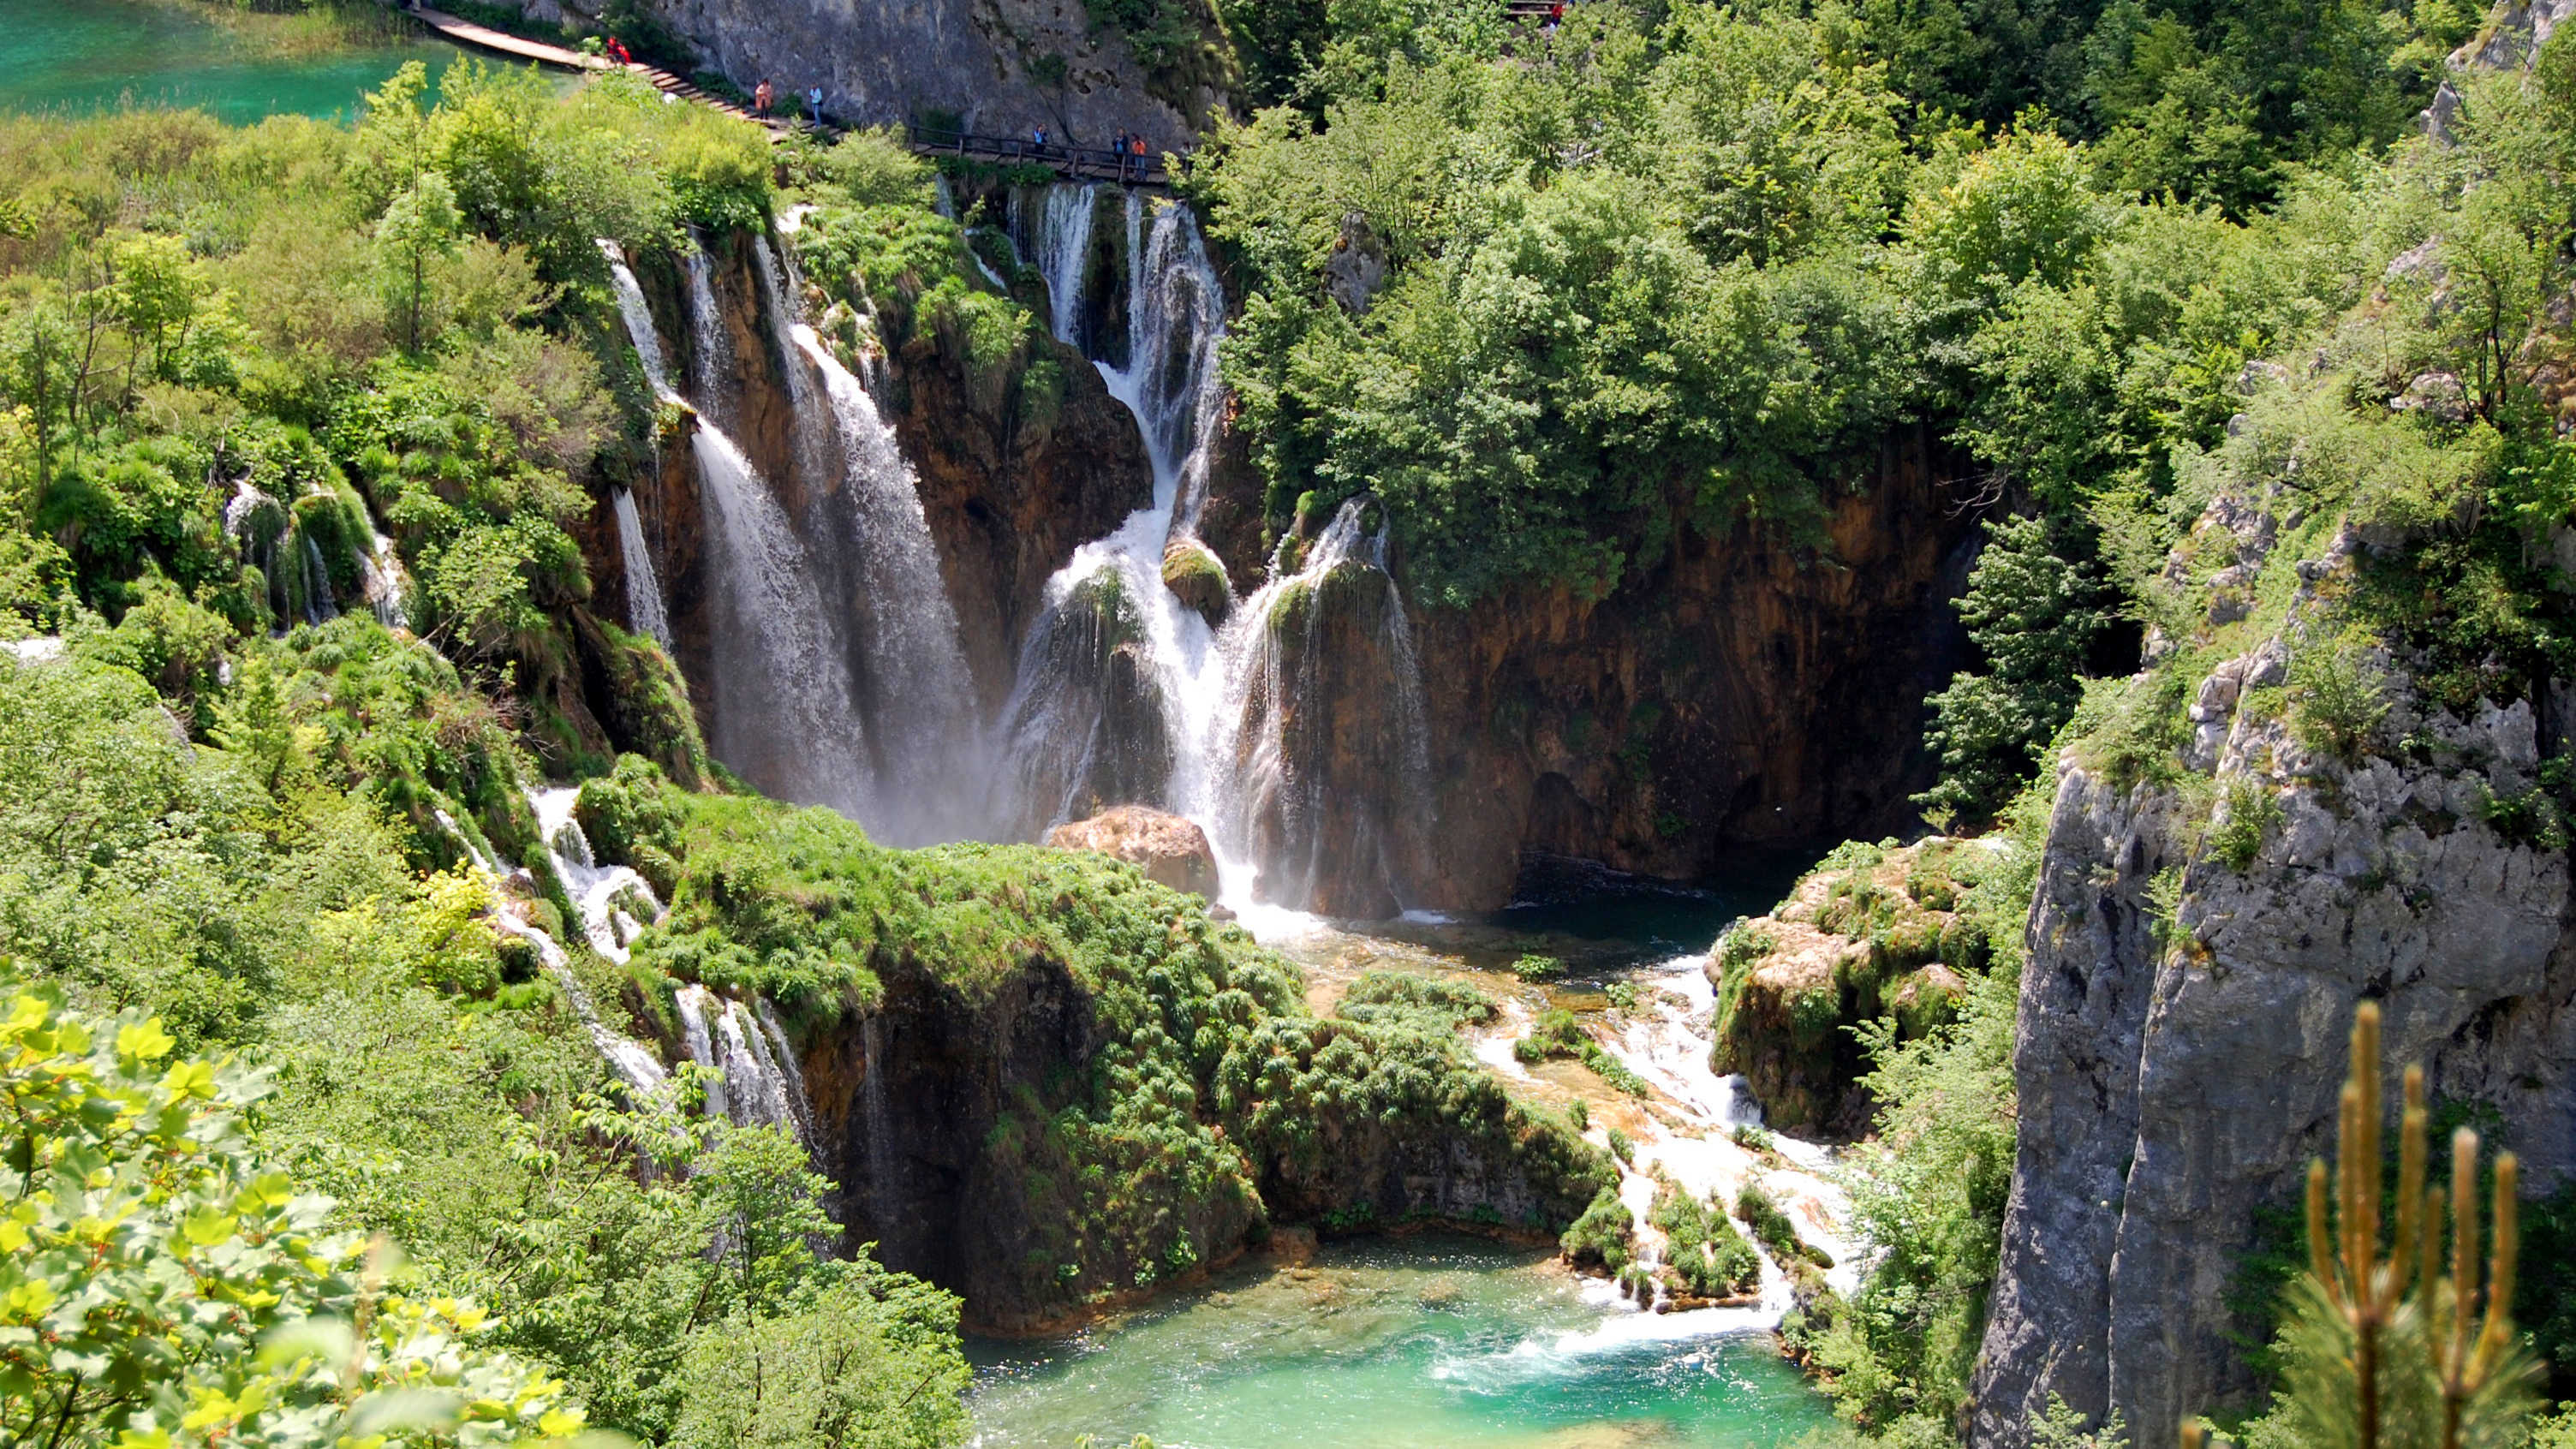 The waterfalls at Plitvice Lakes National Park